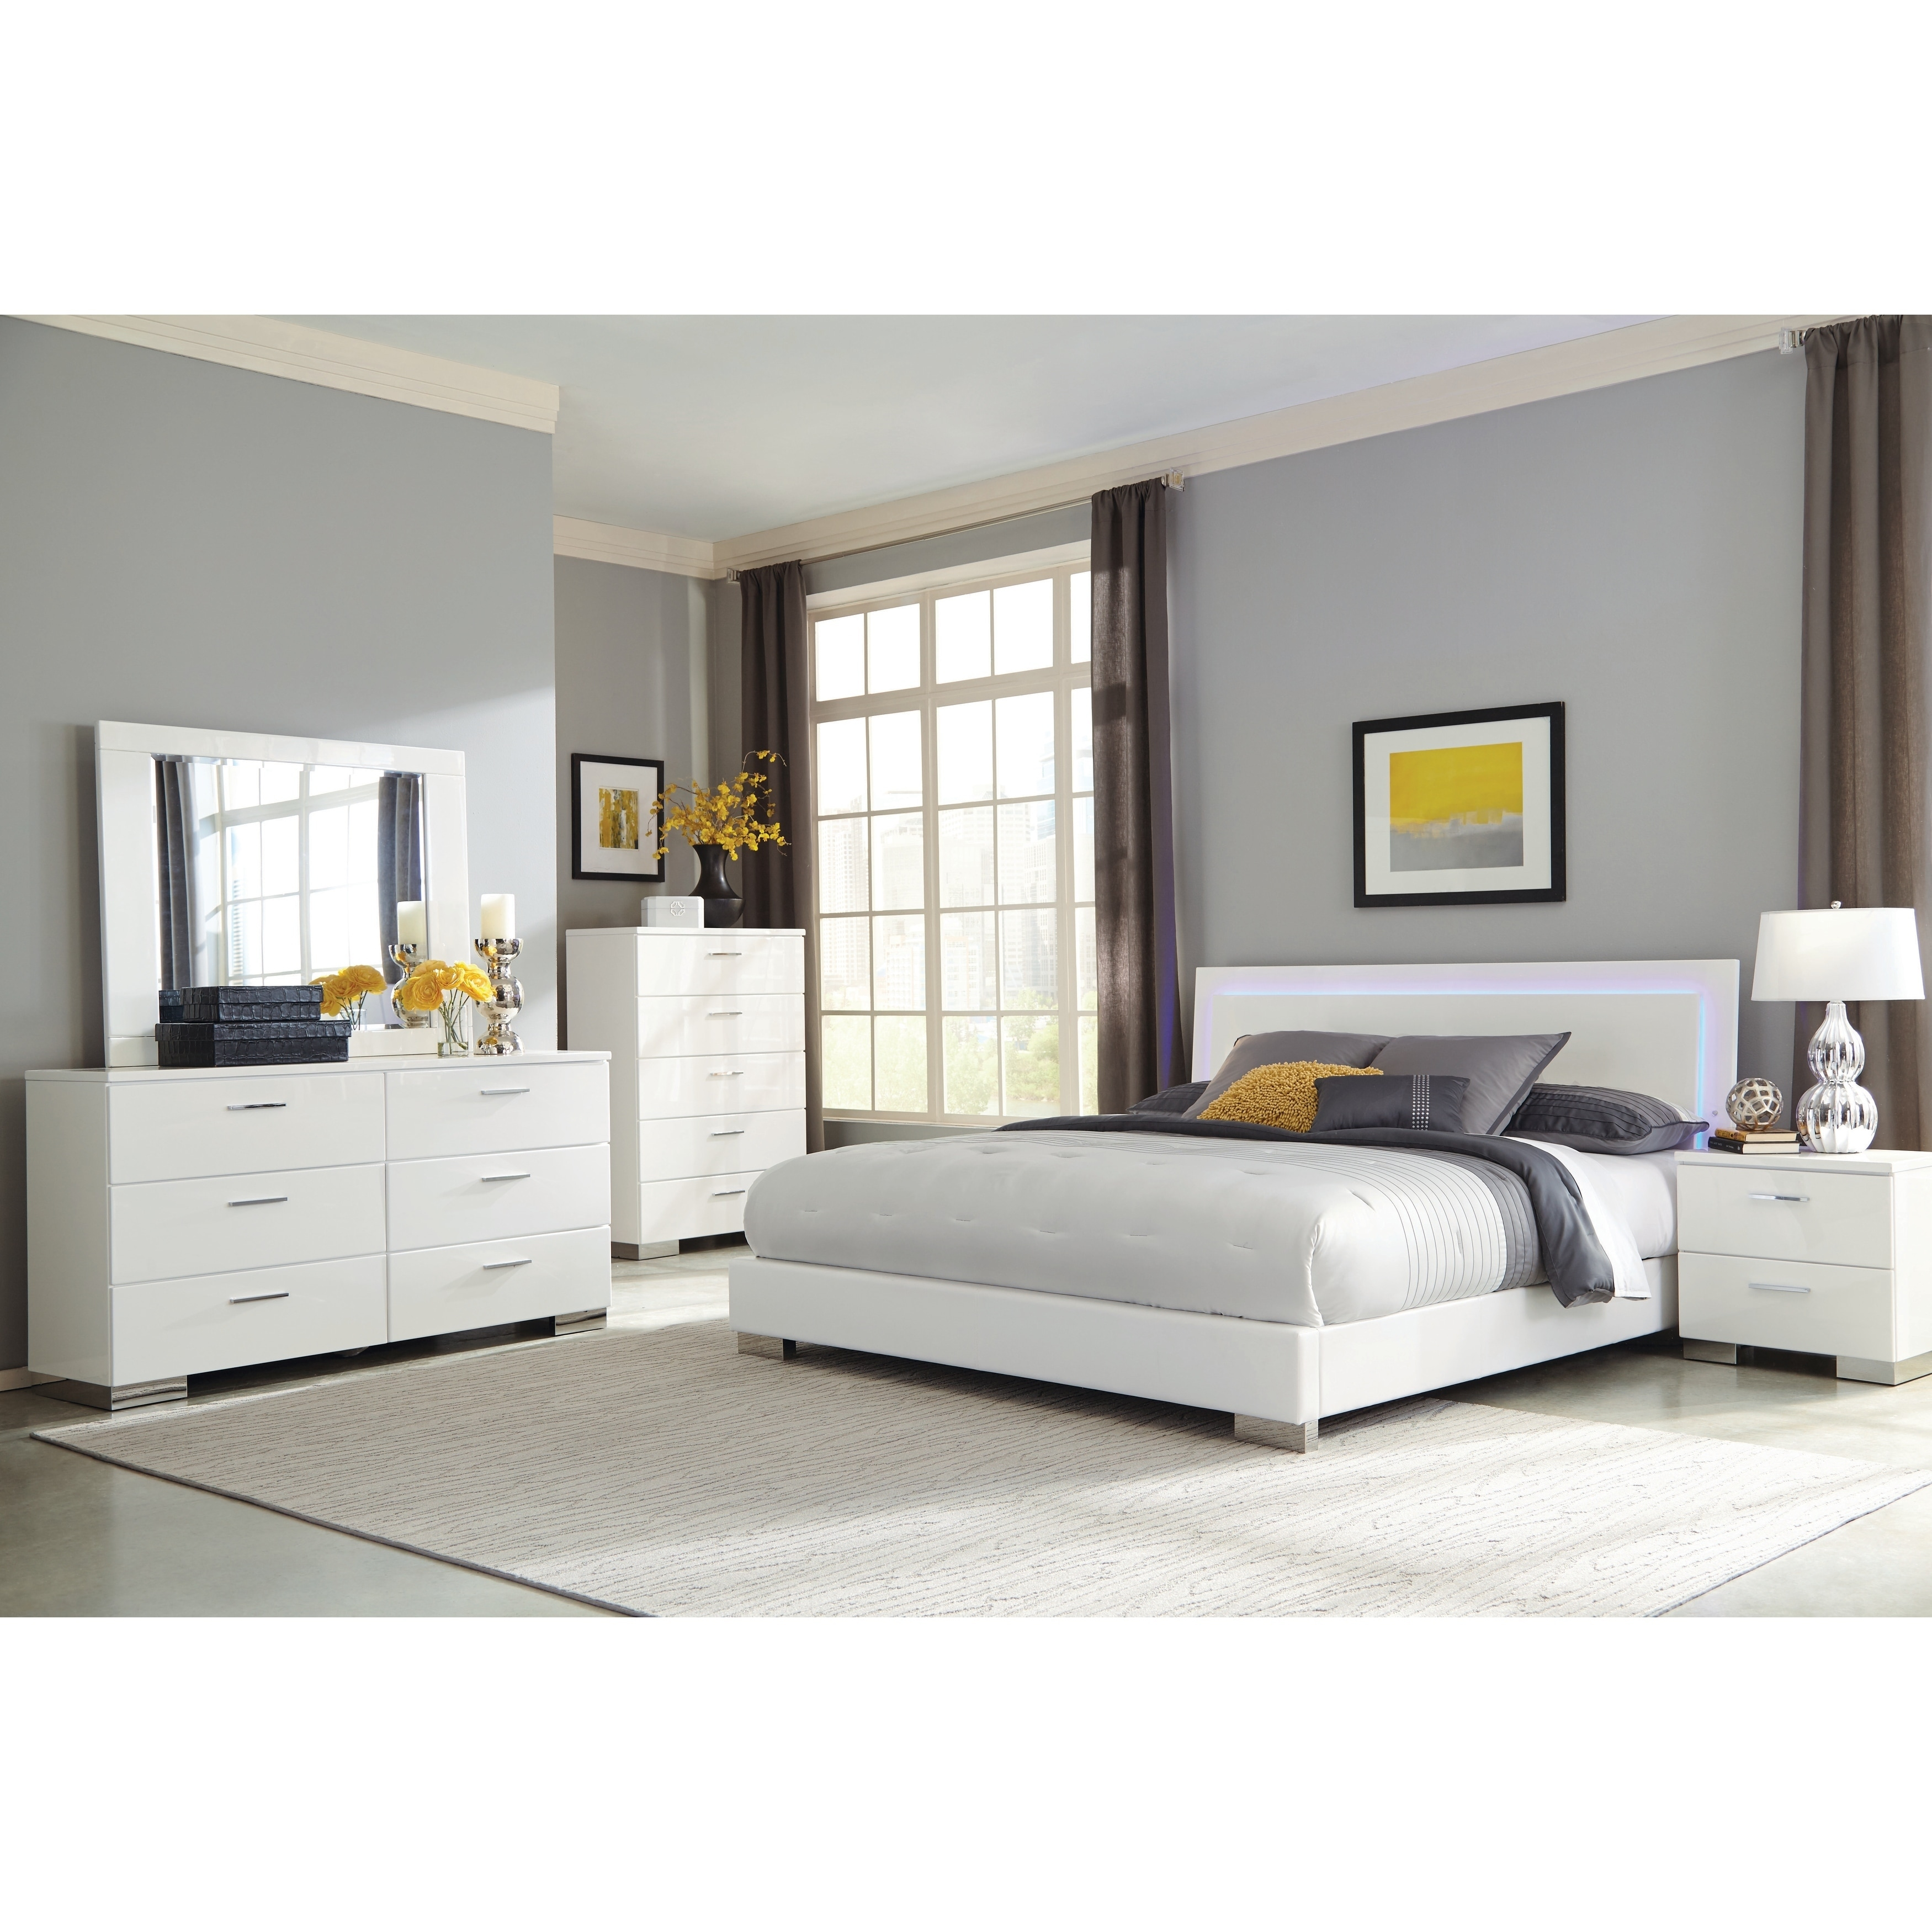 buy white bedroom sets online at overstock our best bedroom rh overstock com white bedroom furniture set queen white bedroom furniture set king